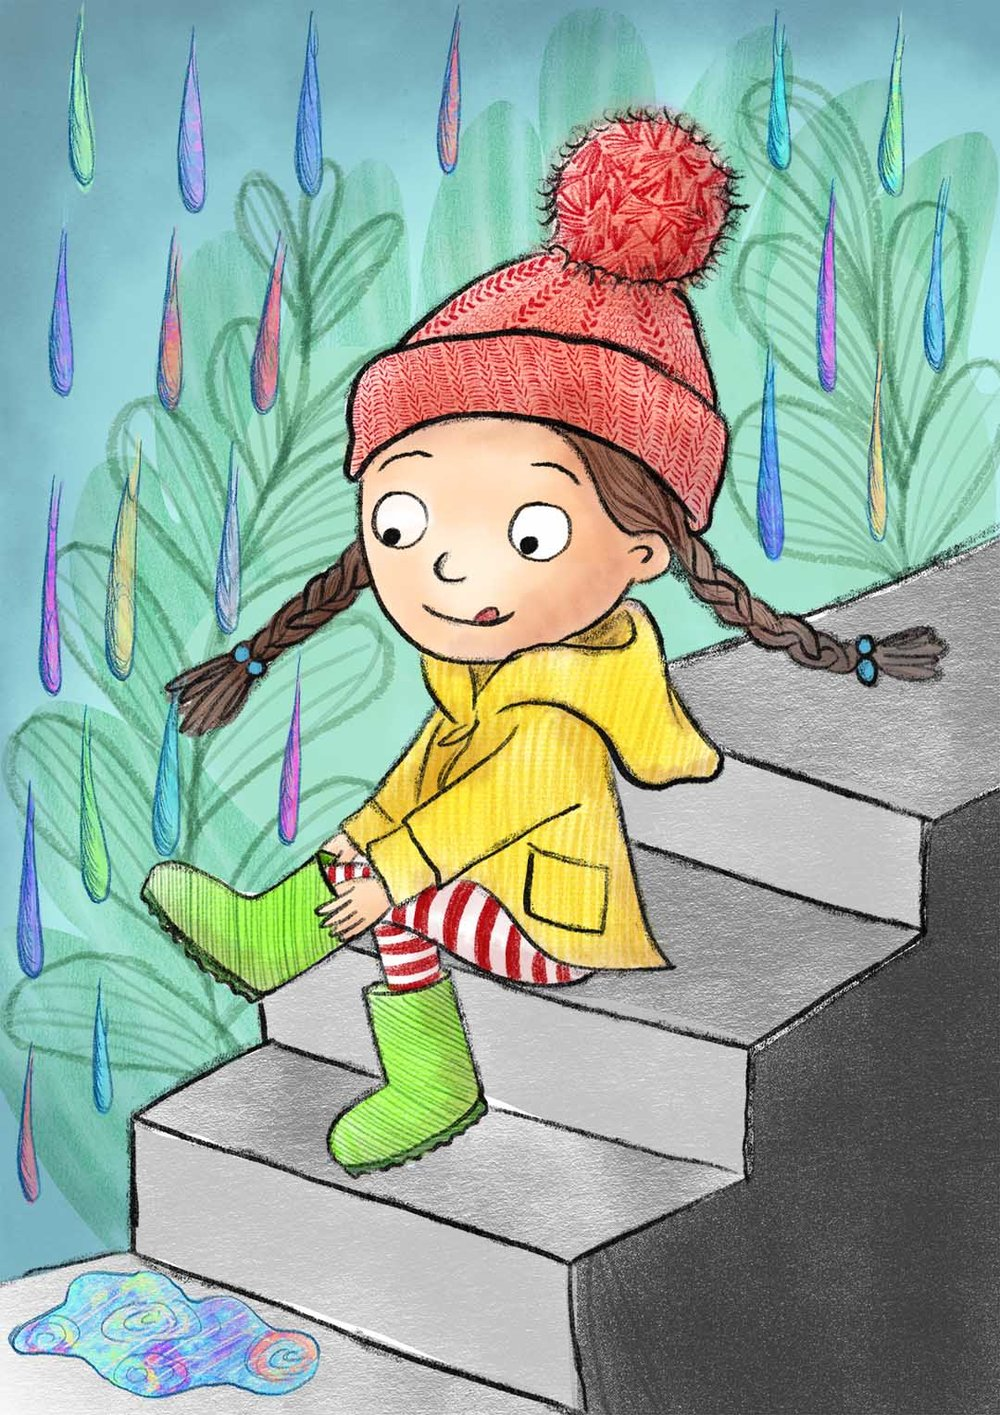 Welly Weather - Get your boots on and go splash in the puddles!